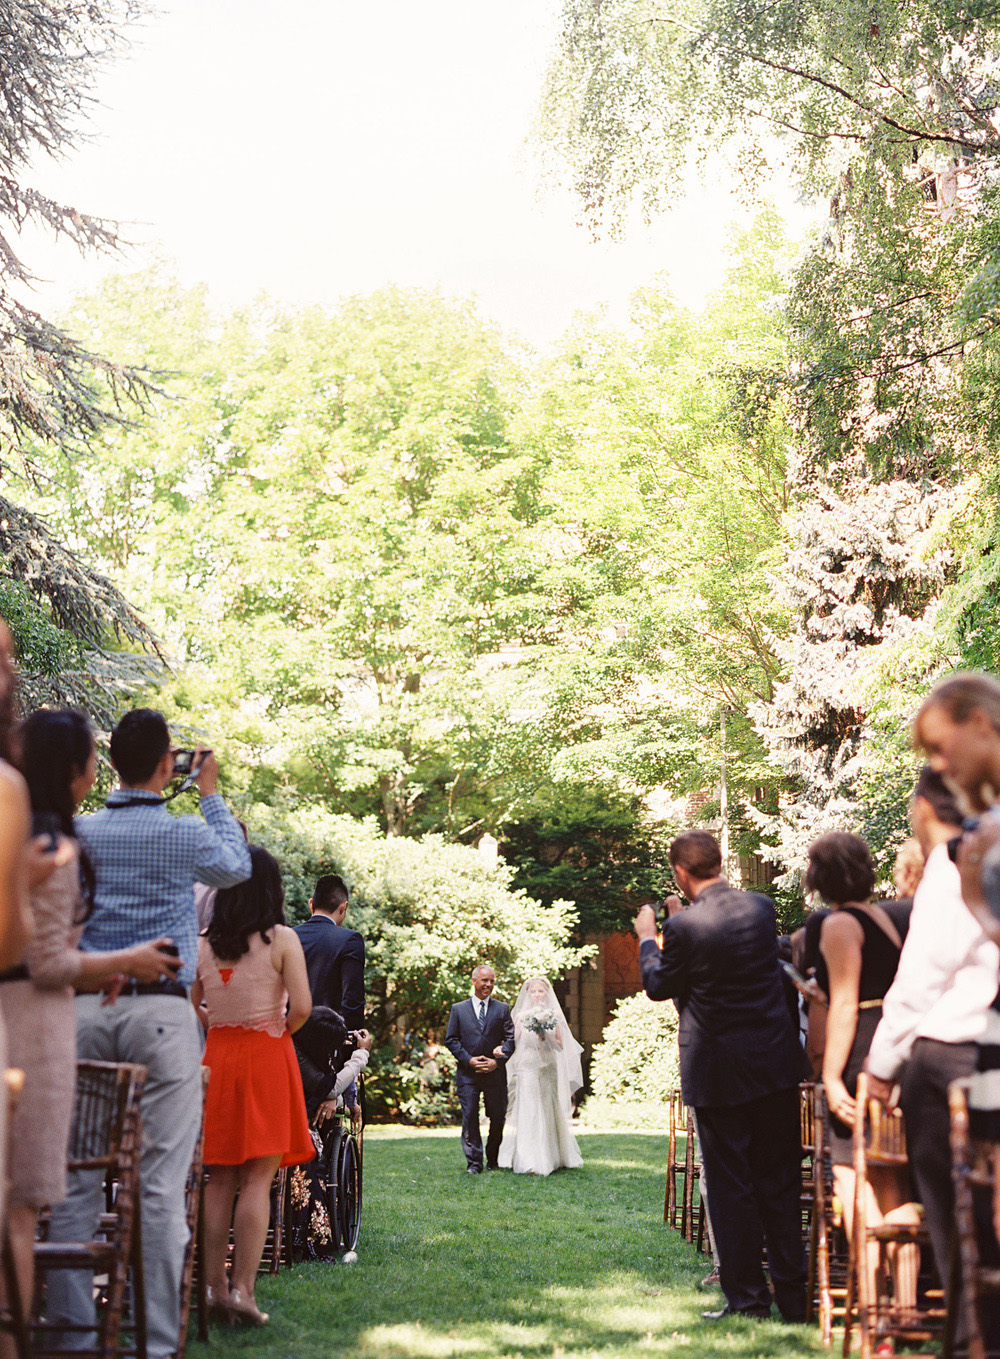 Wedding_BryceCovey_Seattle_Film_0032.jpg